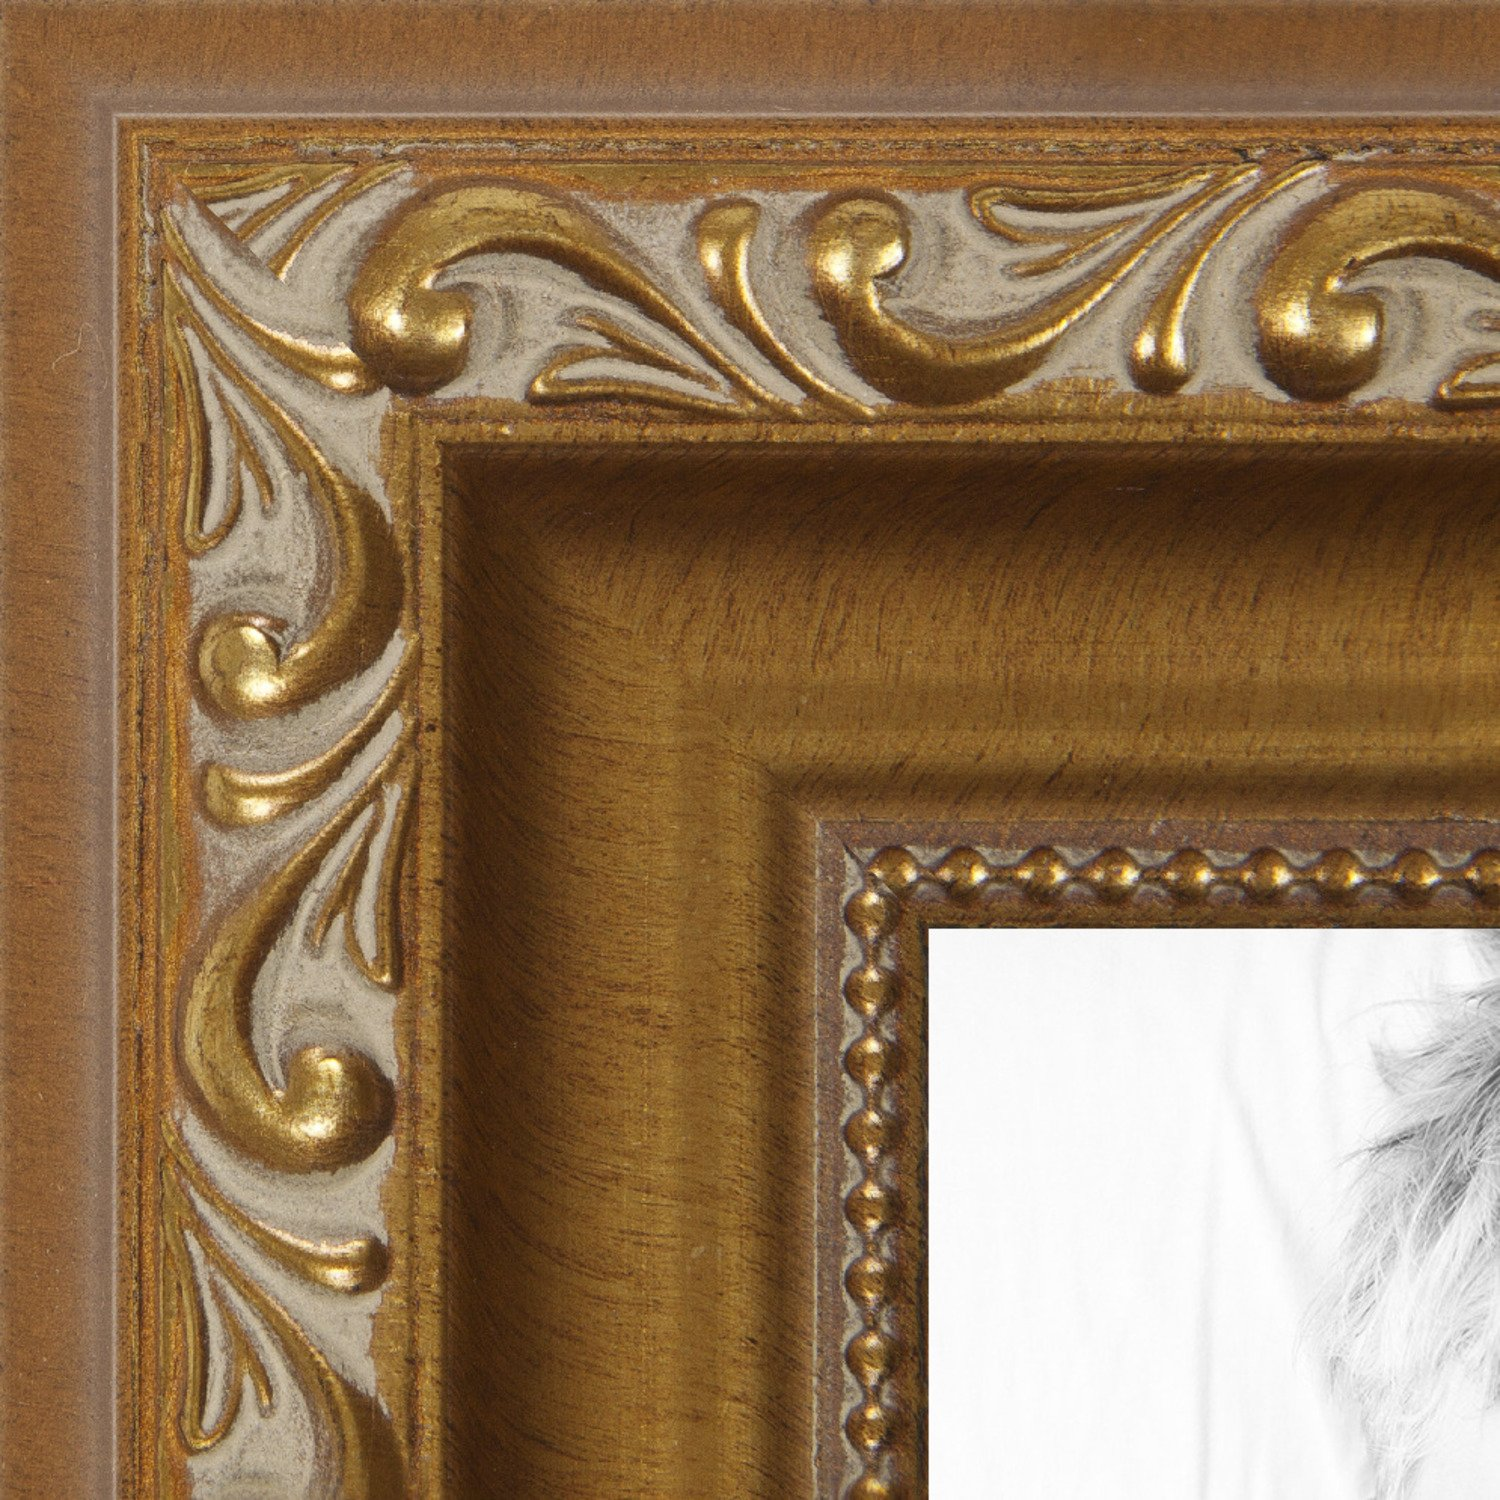 ArtToFrames 14x16 inch Gold with beads Wood Picture Frame, 2WOMD10051-14x16